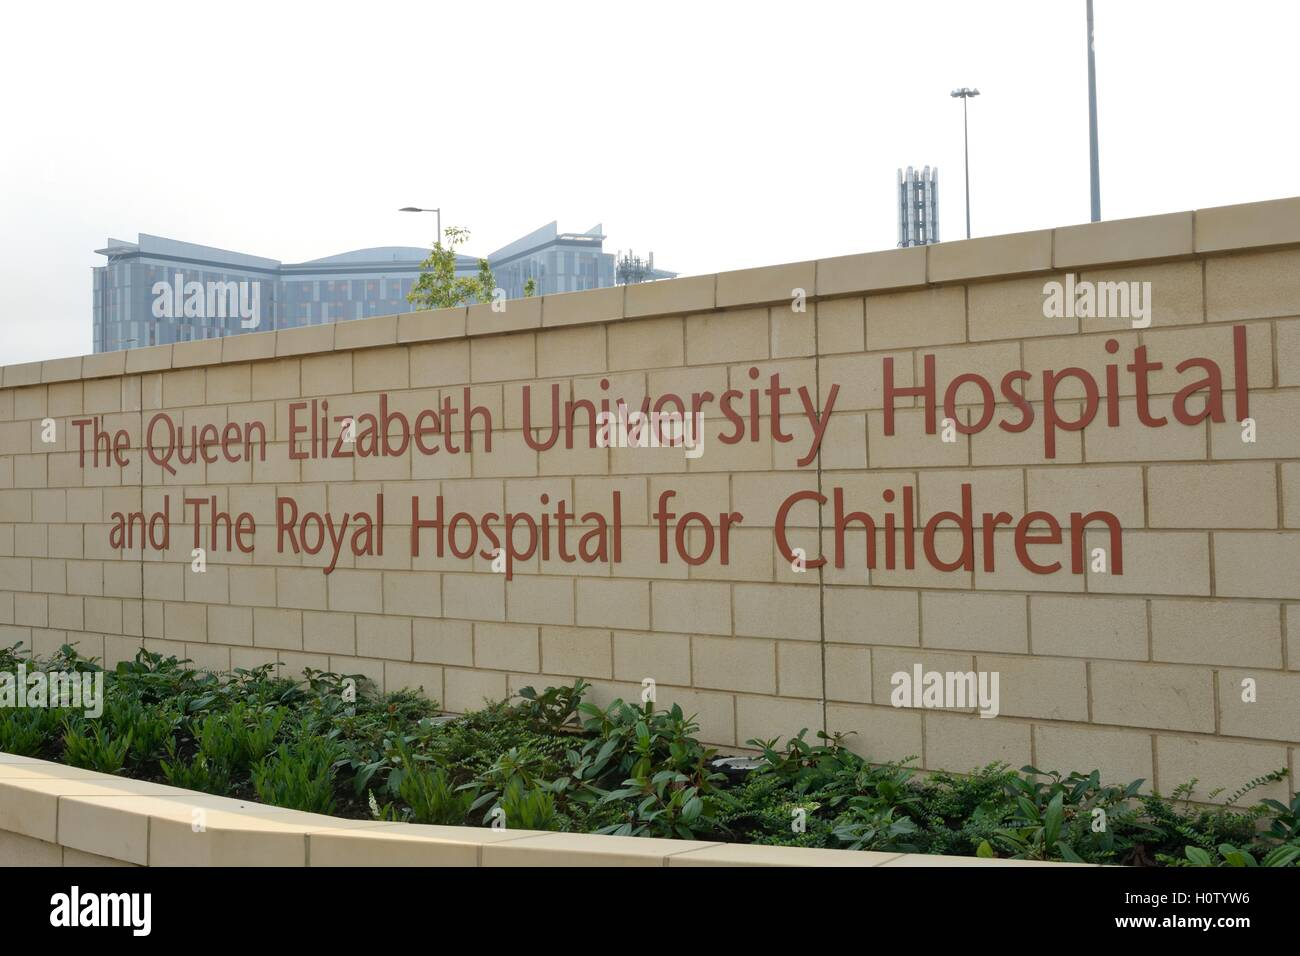 Entrance sign for the Queen Elizabeth University Hospital, and the Royal Hospital for Children, Glasgow, Scotland, - Stock Image